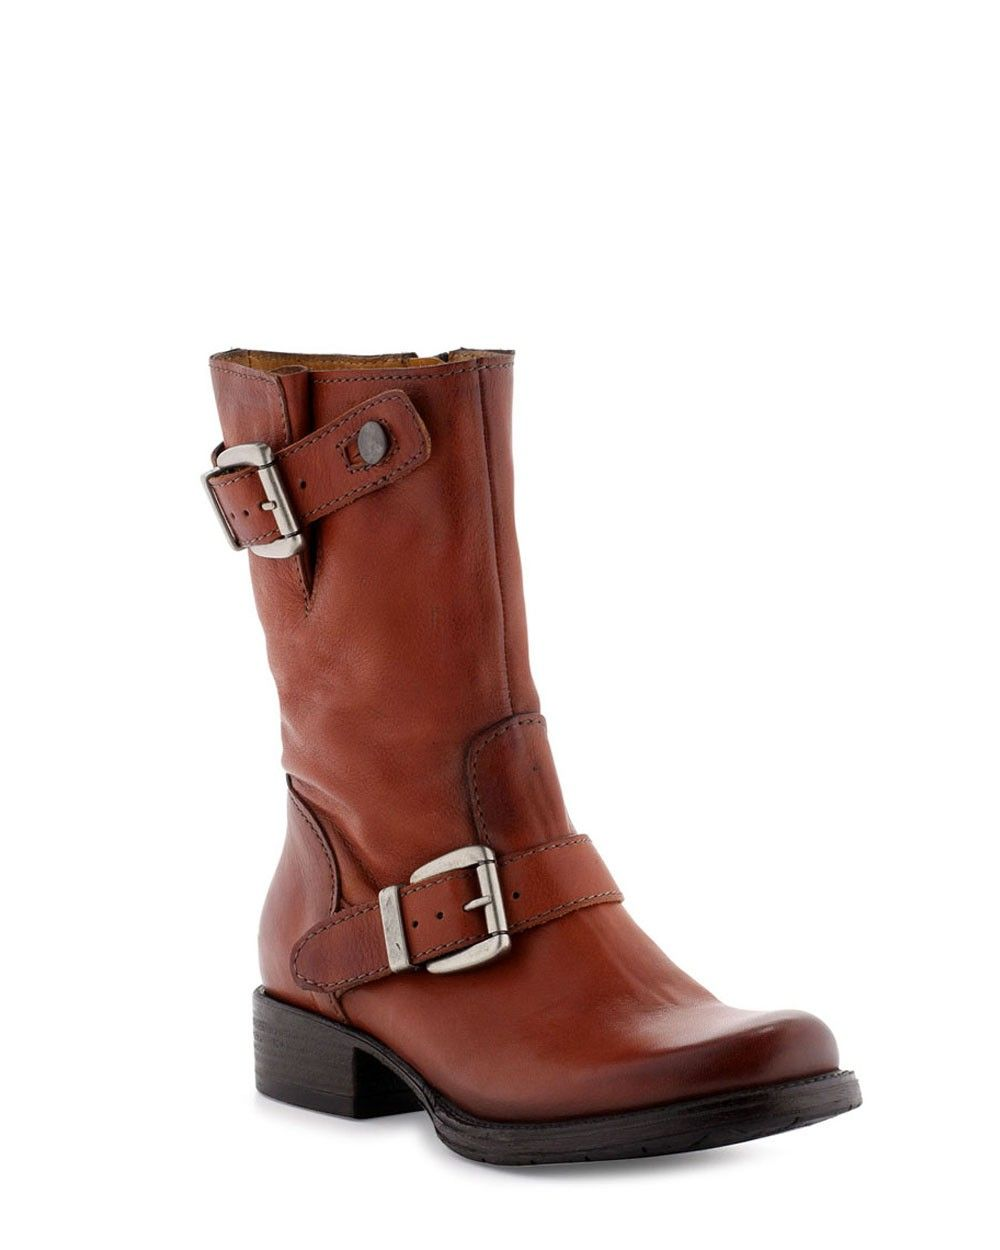 Boots Chaussures Booh Bootow boots Chaussures Boots Femme Automne Hiver a69200